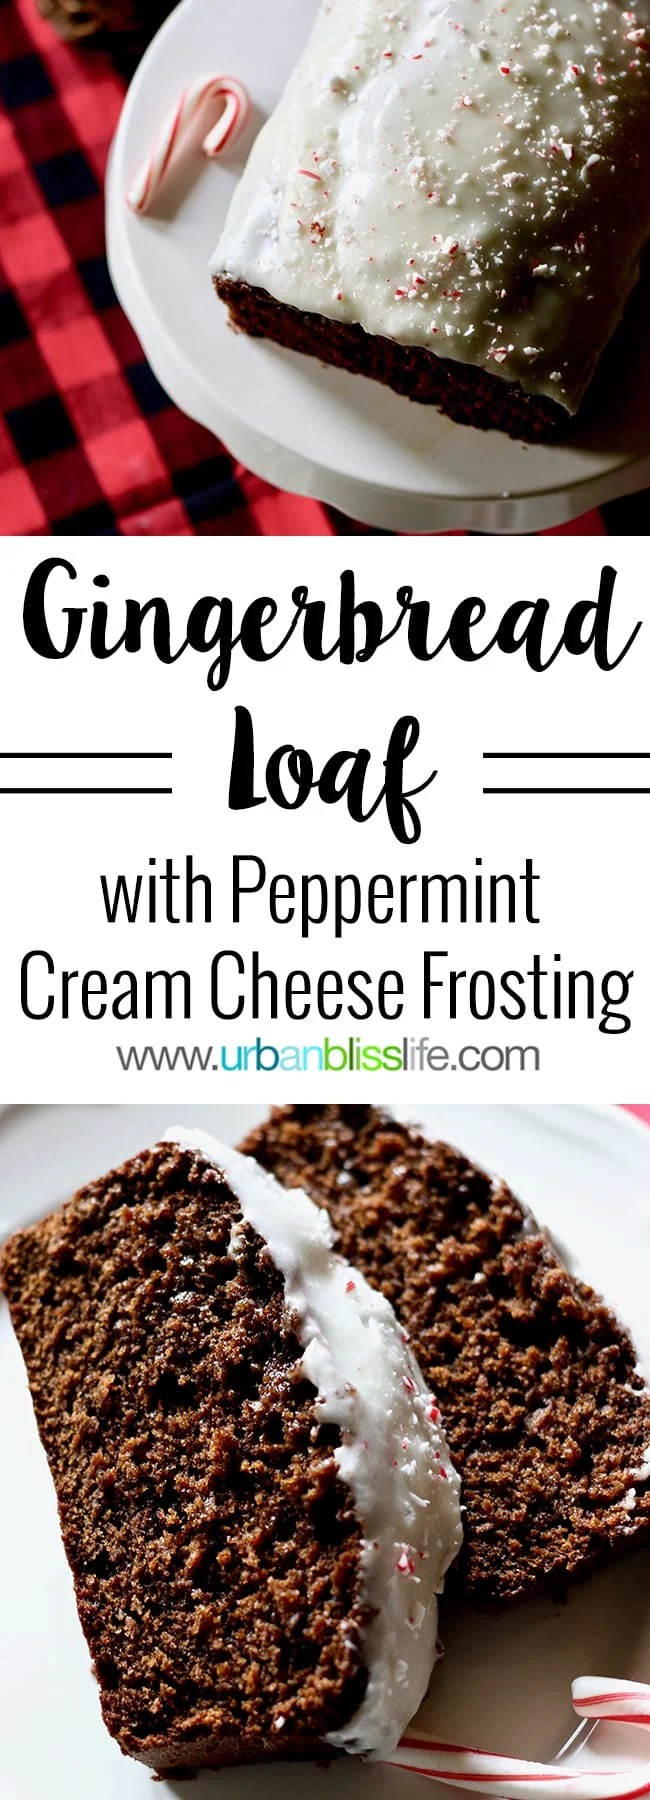 Gingerbread Loaf with Peppermint Cream Cheese Frosting, recipe on UrbanBlissLife.com